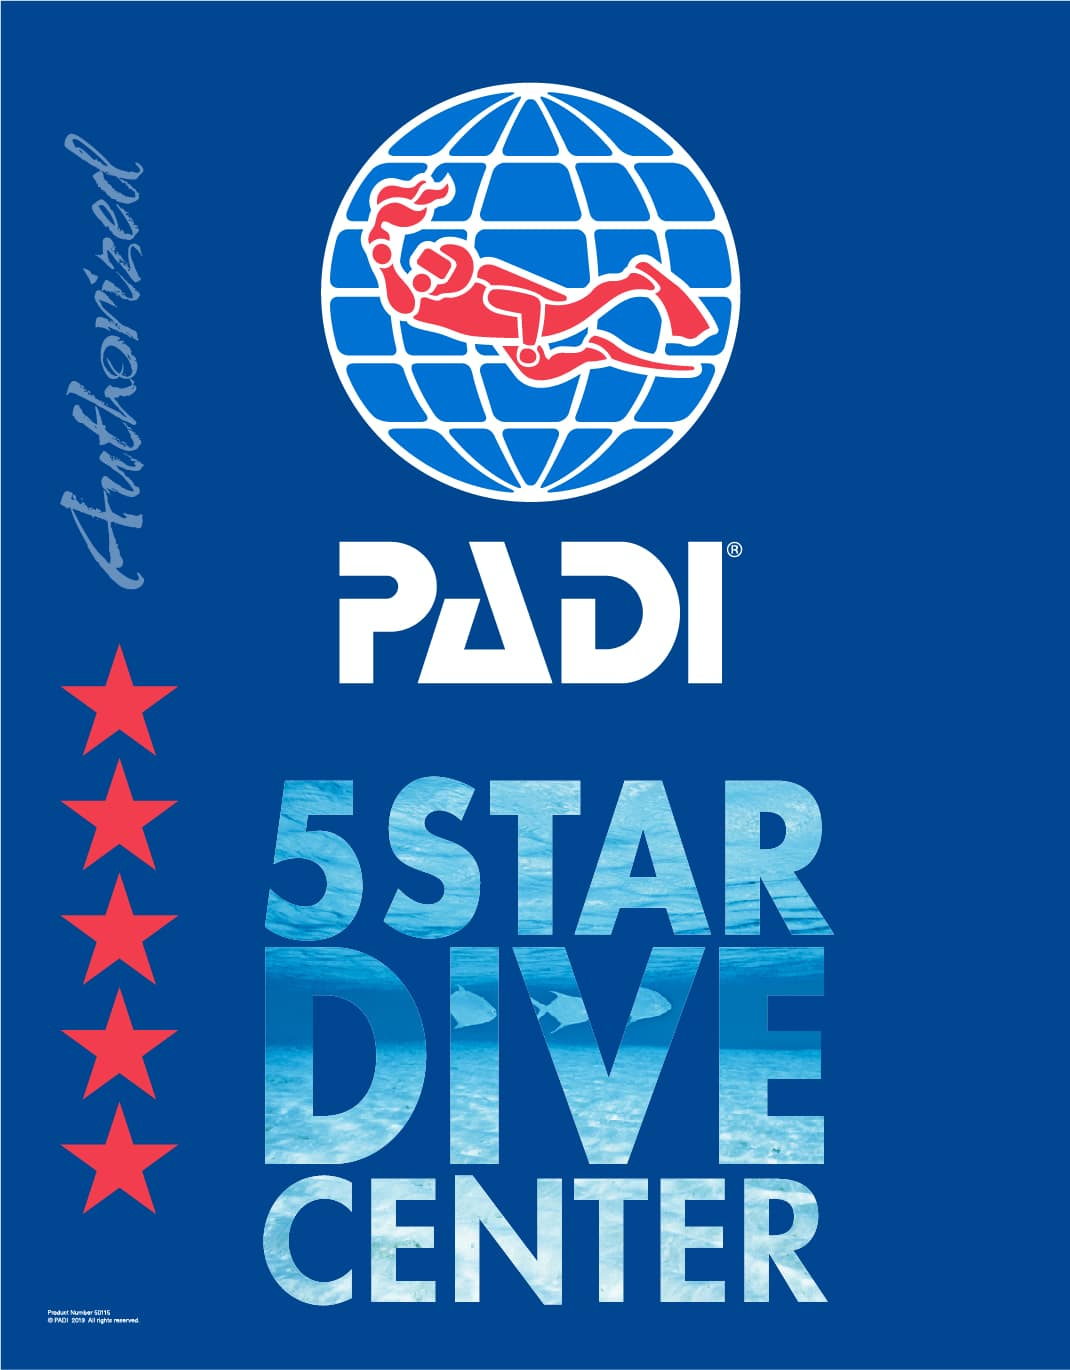 PADI 5 star dive centre accreditation logo